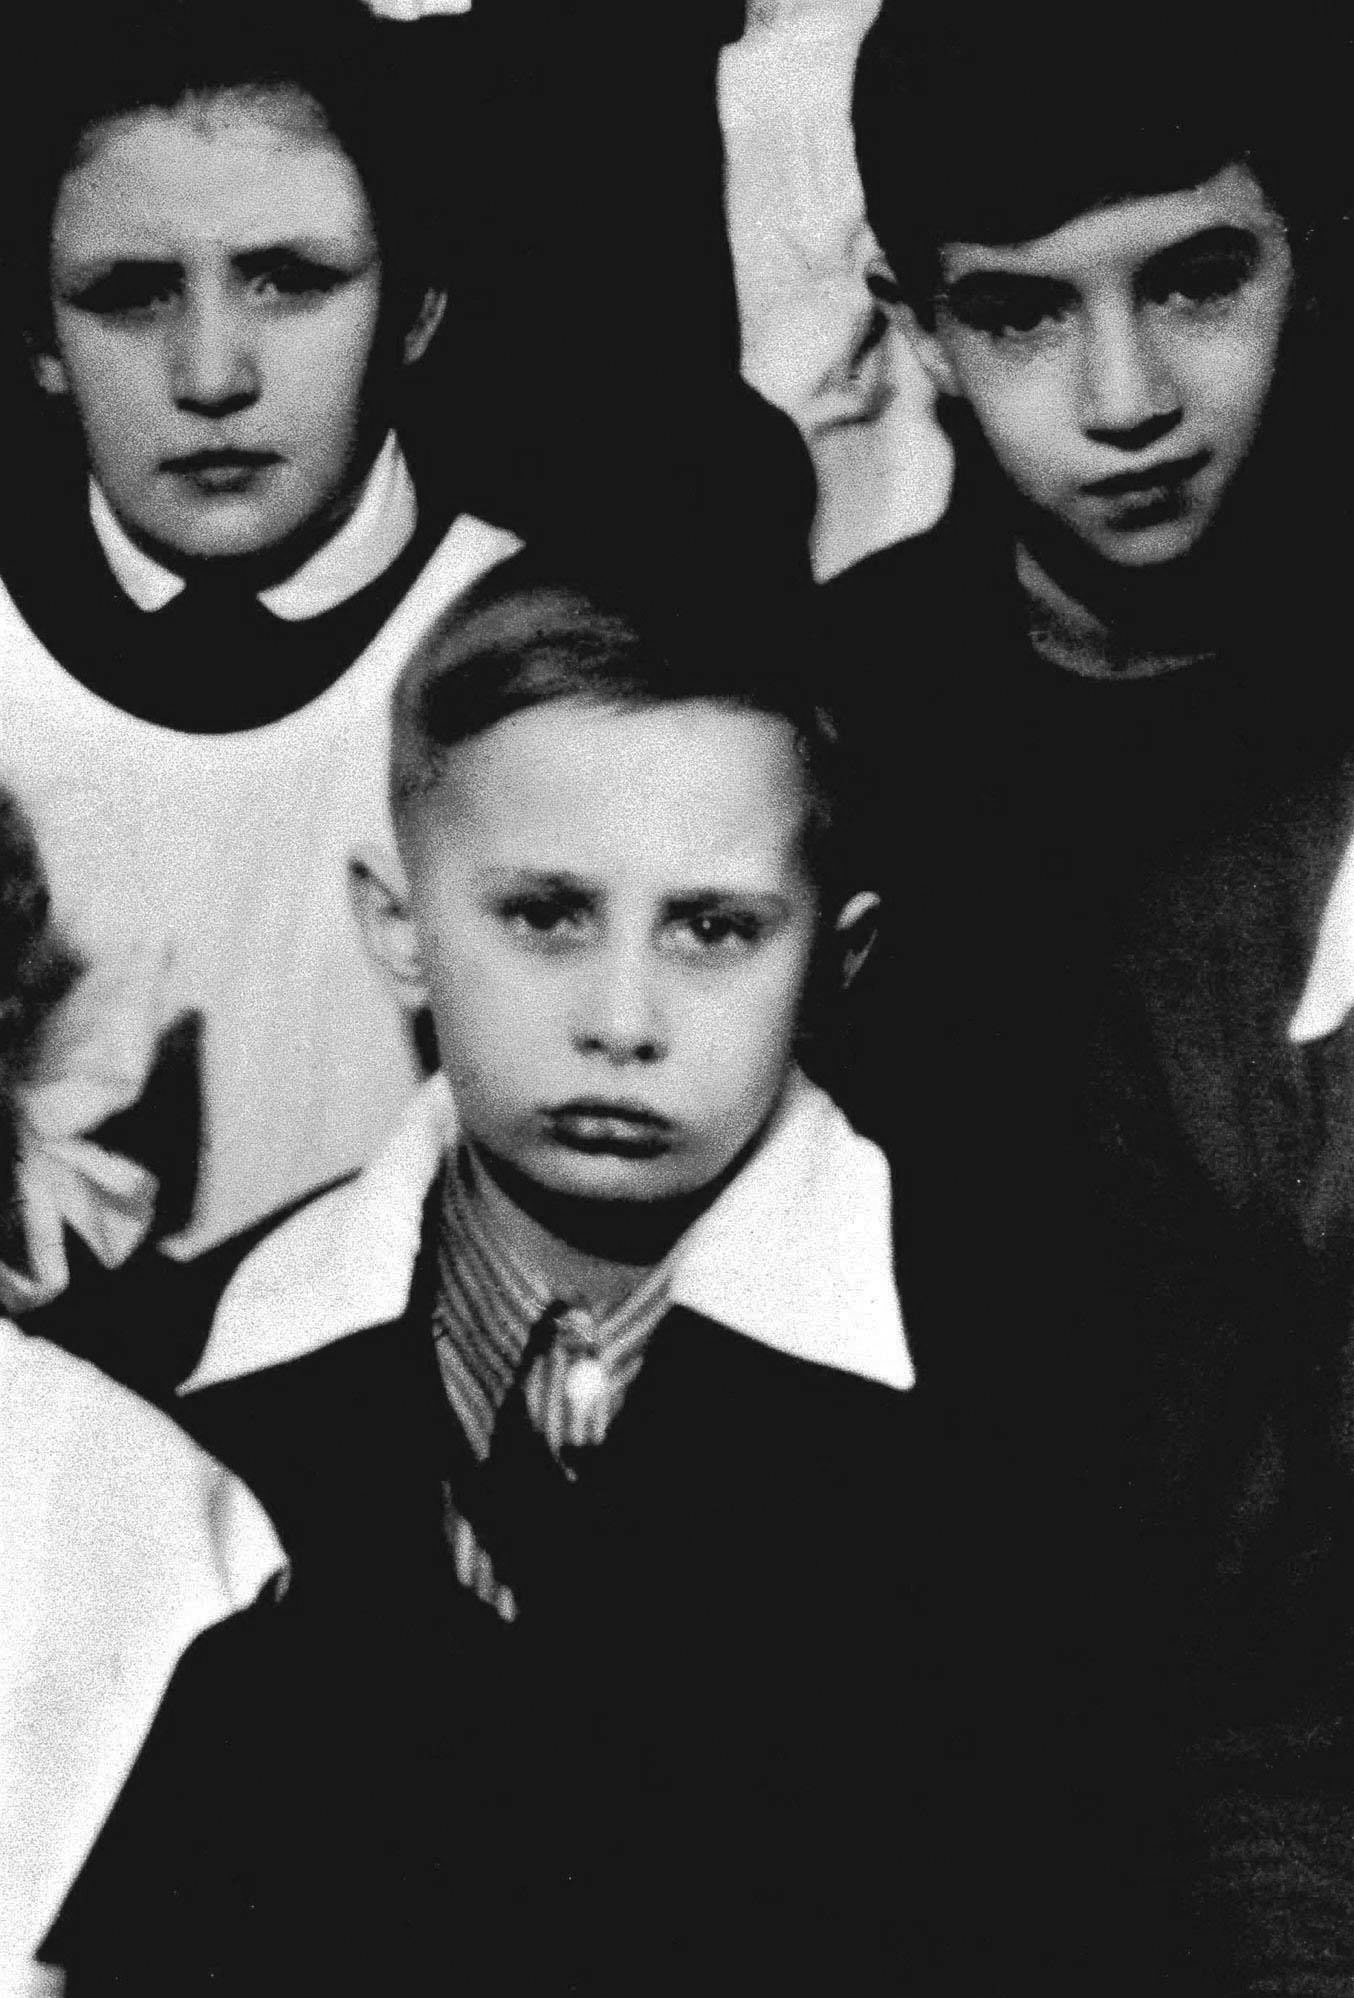 A class photo of Vladimir Putin in St. Petersburg, then called Leningrad, circa 1960.